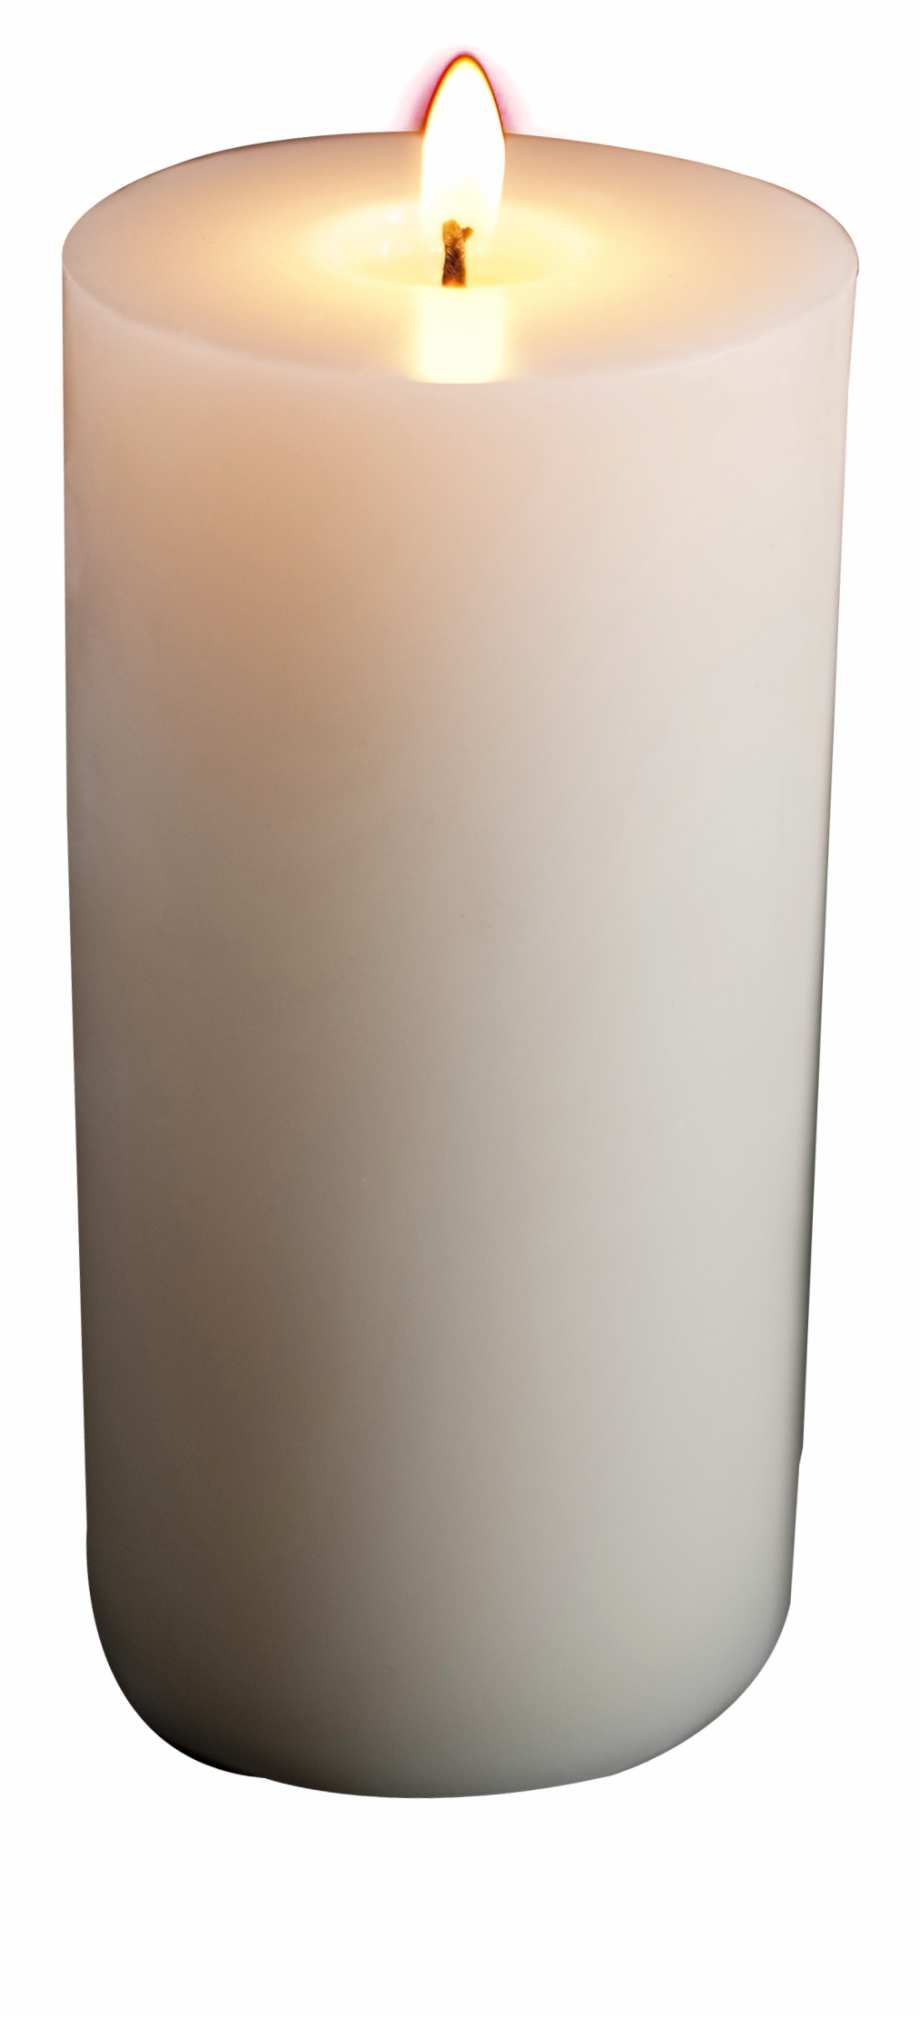 jpg download Flame png candles free. Candle transparent